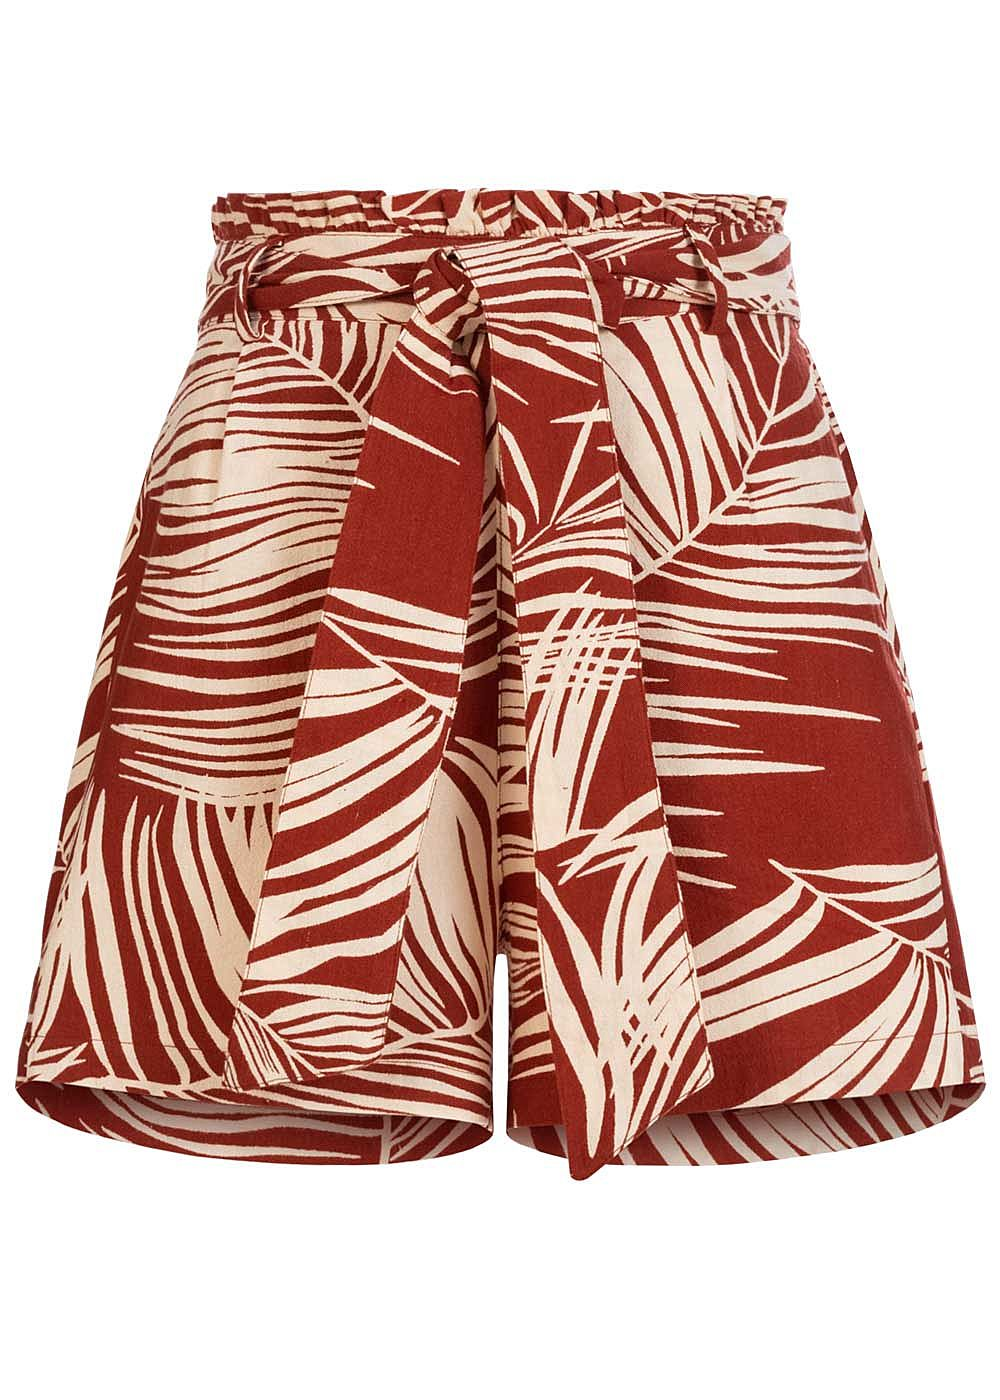 ONLY Damen Paperbag Shorts 2-Pockets Tropical Print burnt henna braun - Art.-Nr.: 20073639